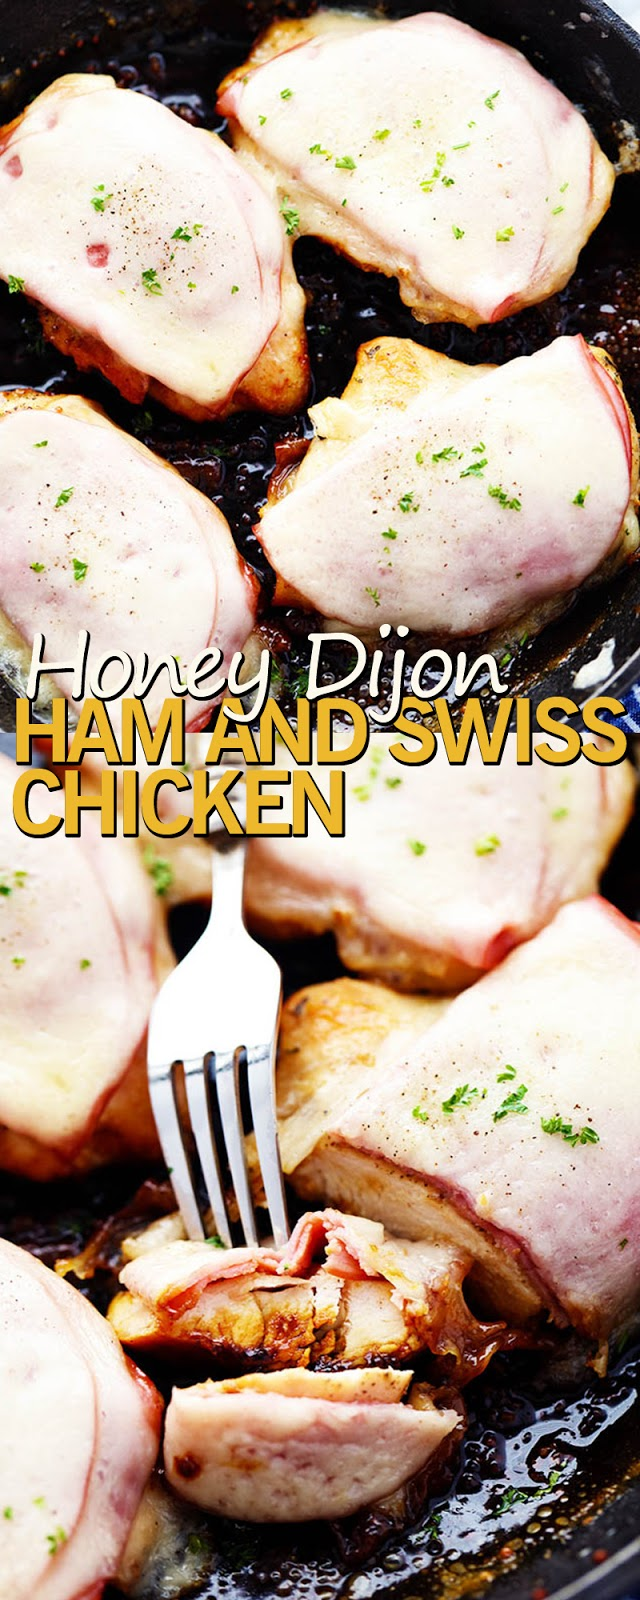 HONEY DIJON HAM AND SWISS CHICKEN